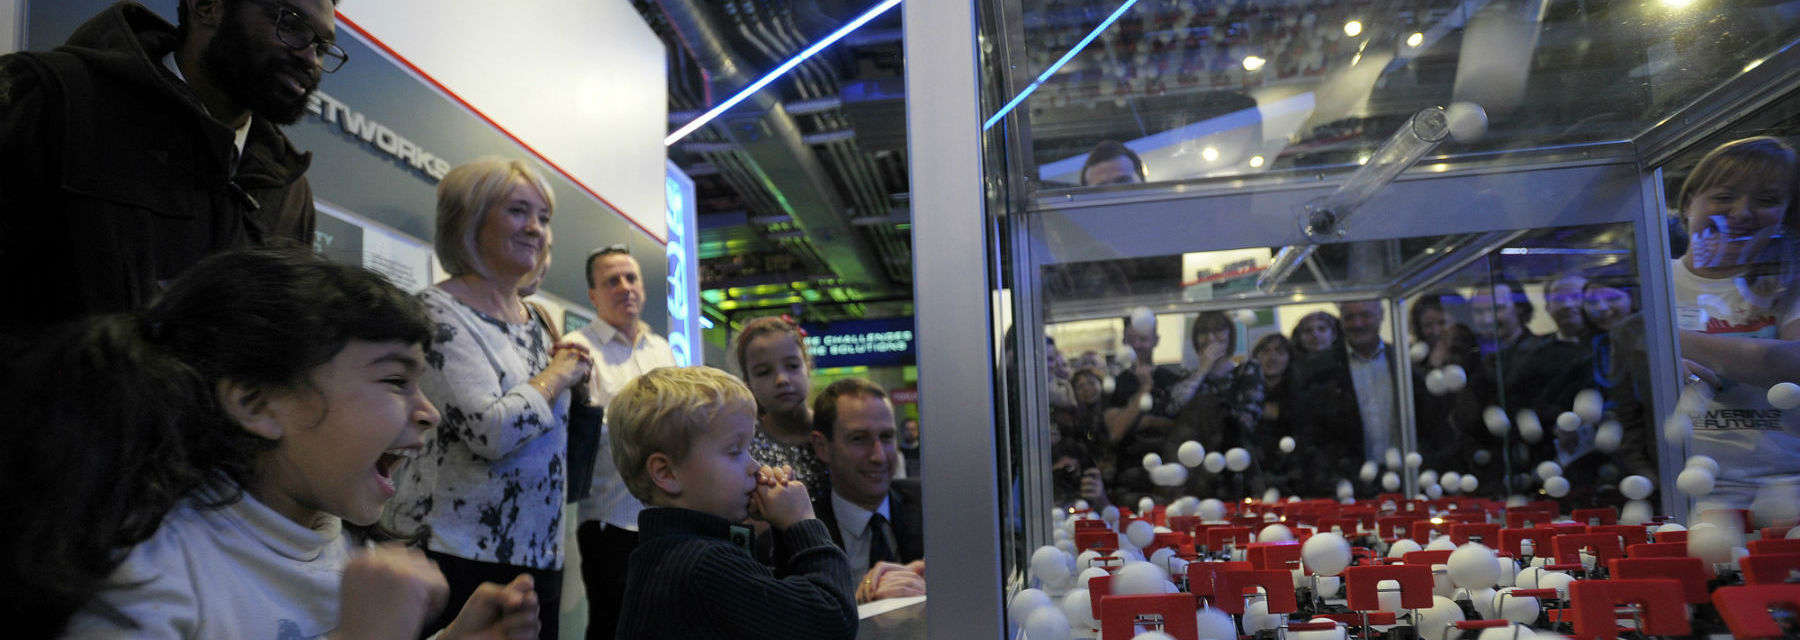 A crowd of mixed ages watch on in excitement at an exhibit demonstrating a chain reaction